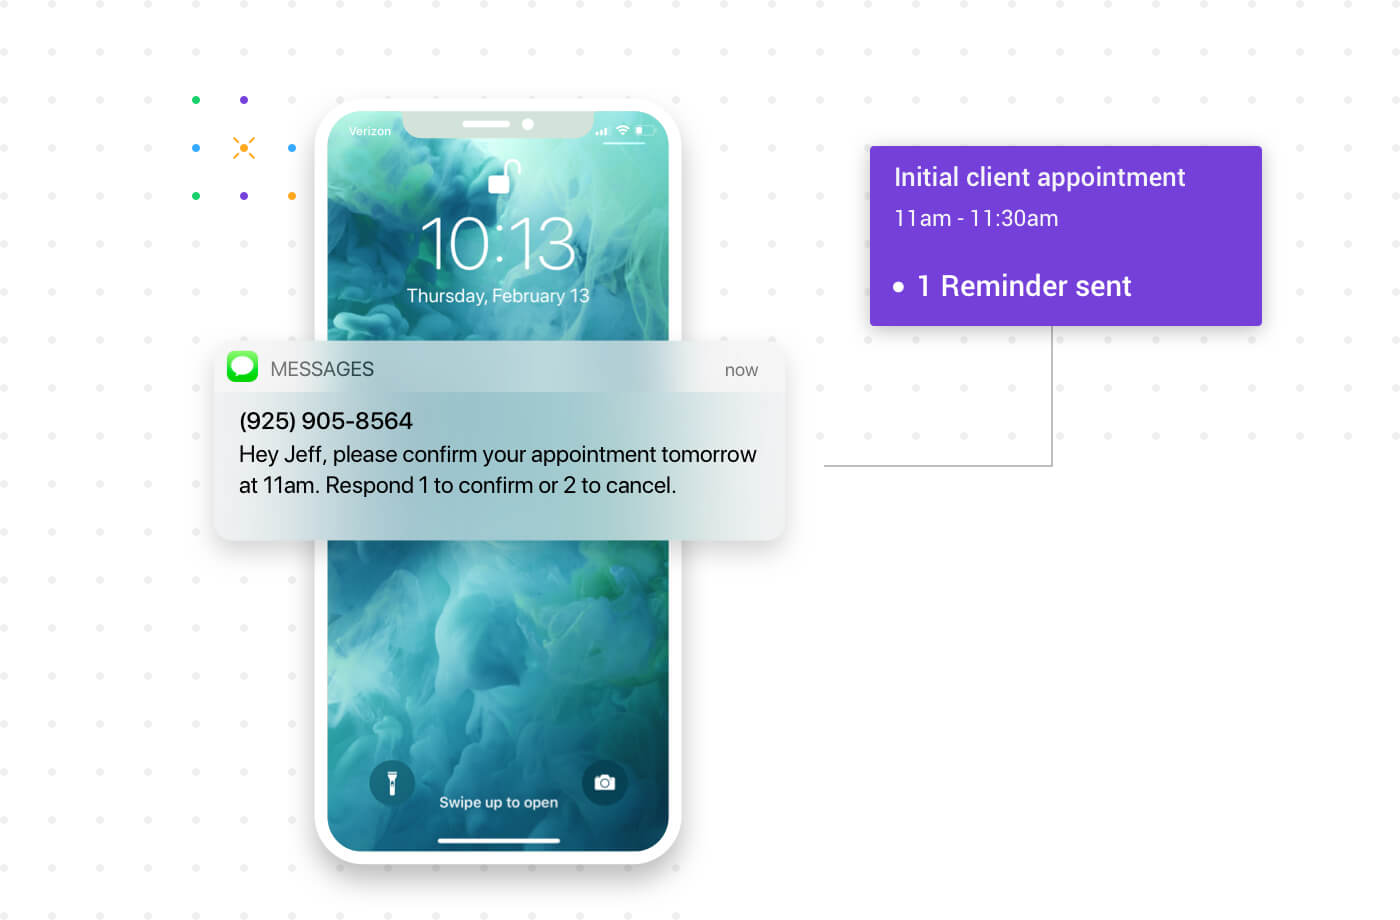 Apptoto provides appointment reminders